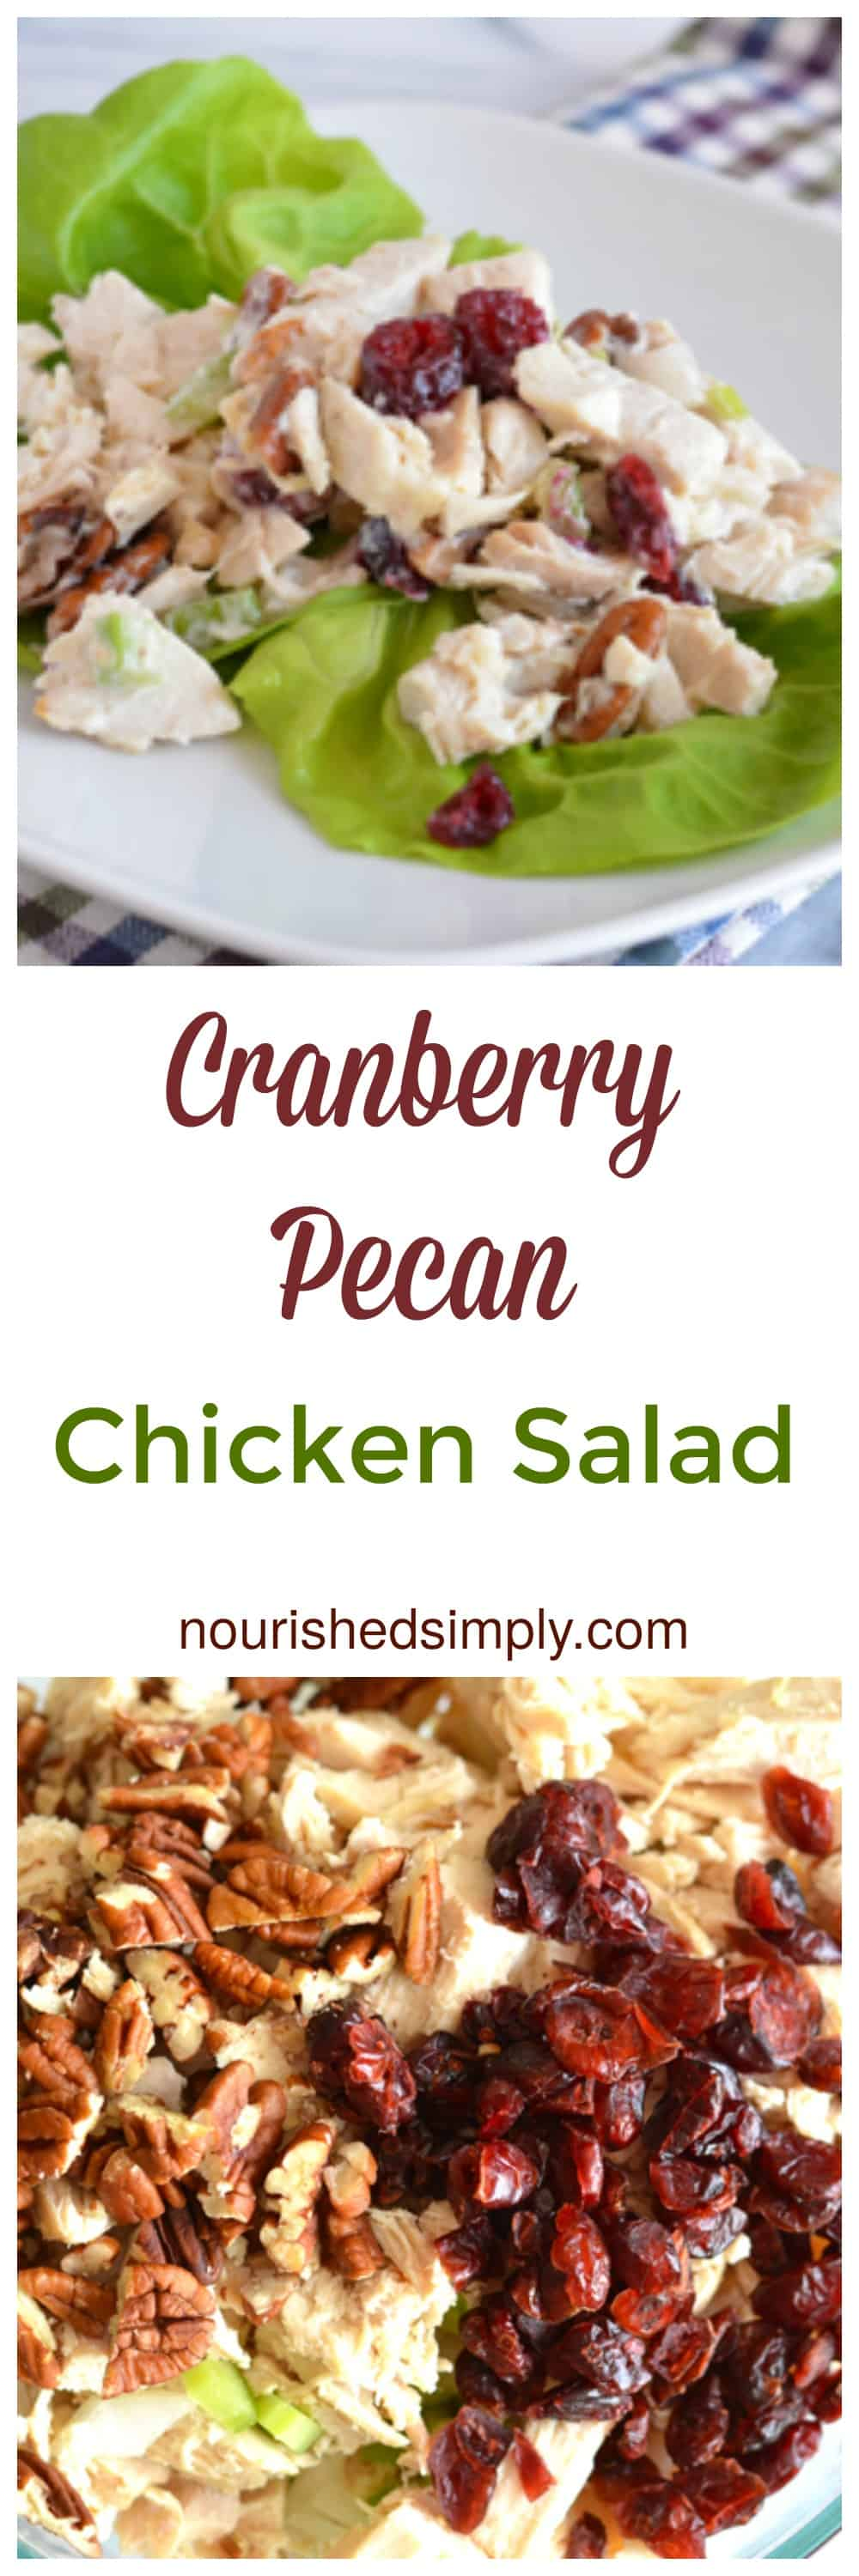 Cranberry Pecan Chicken Salad is festive enough for your holiday menu.